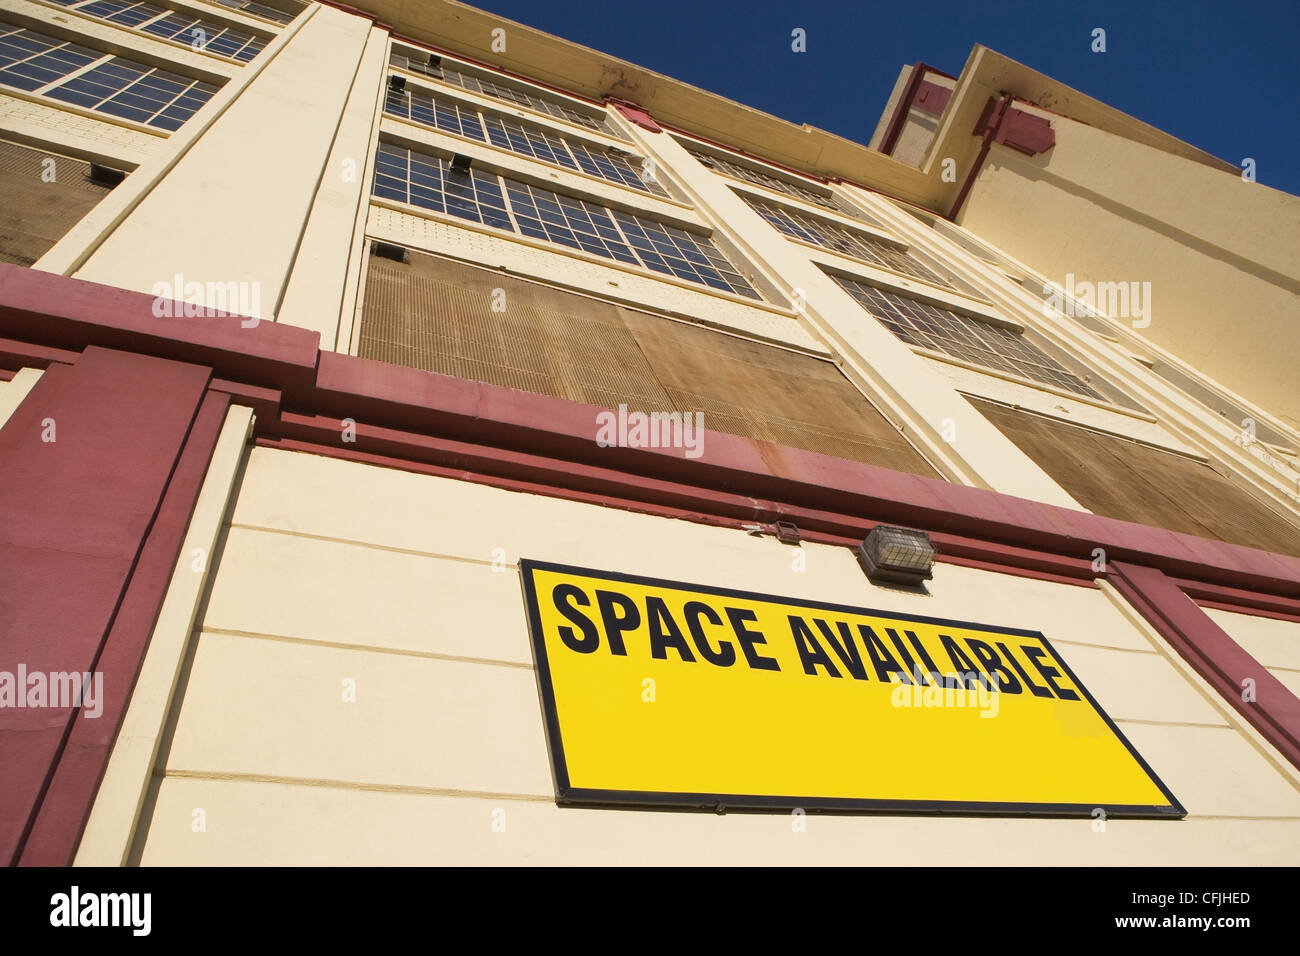 Building with space available - Stock Image